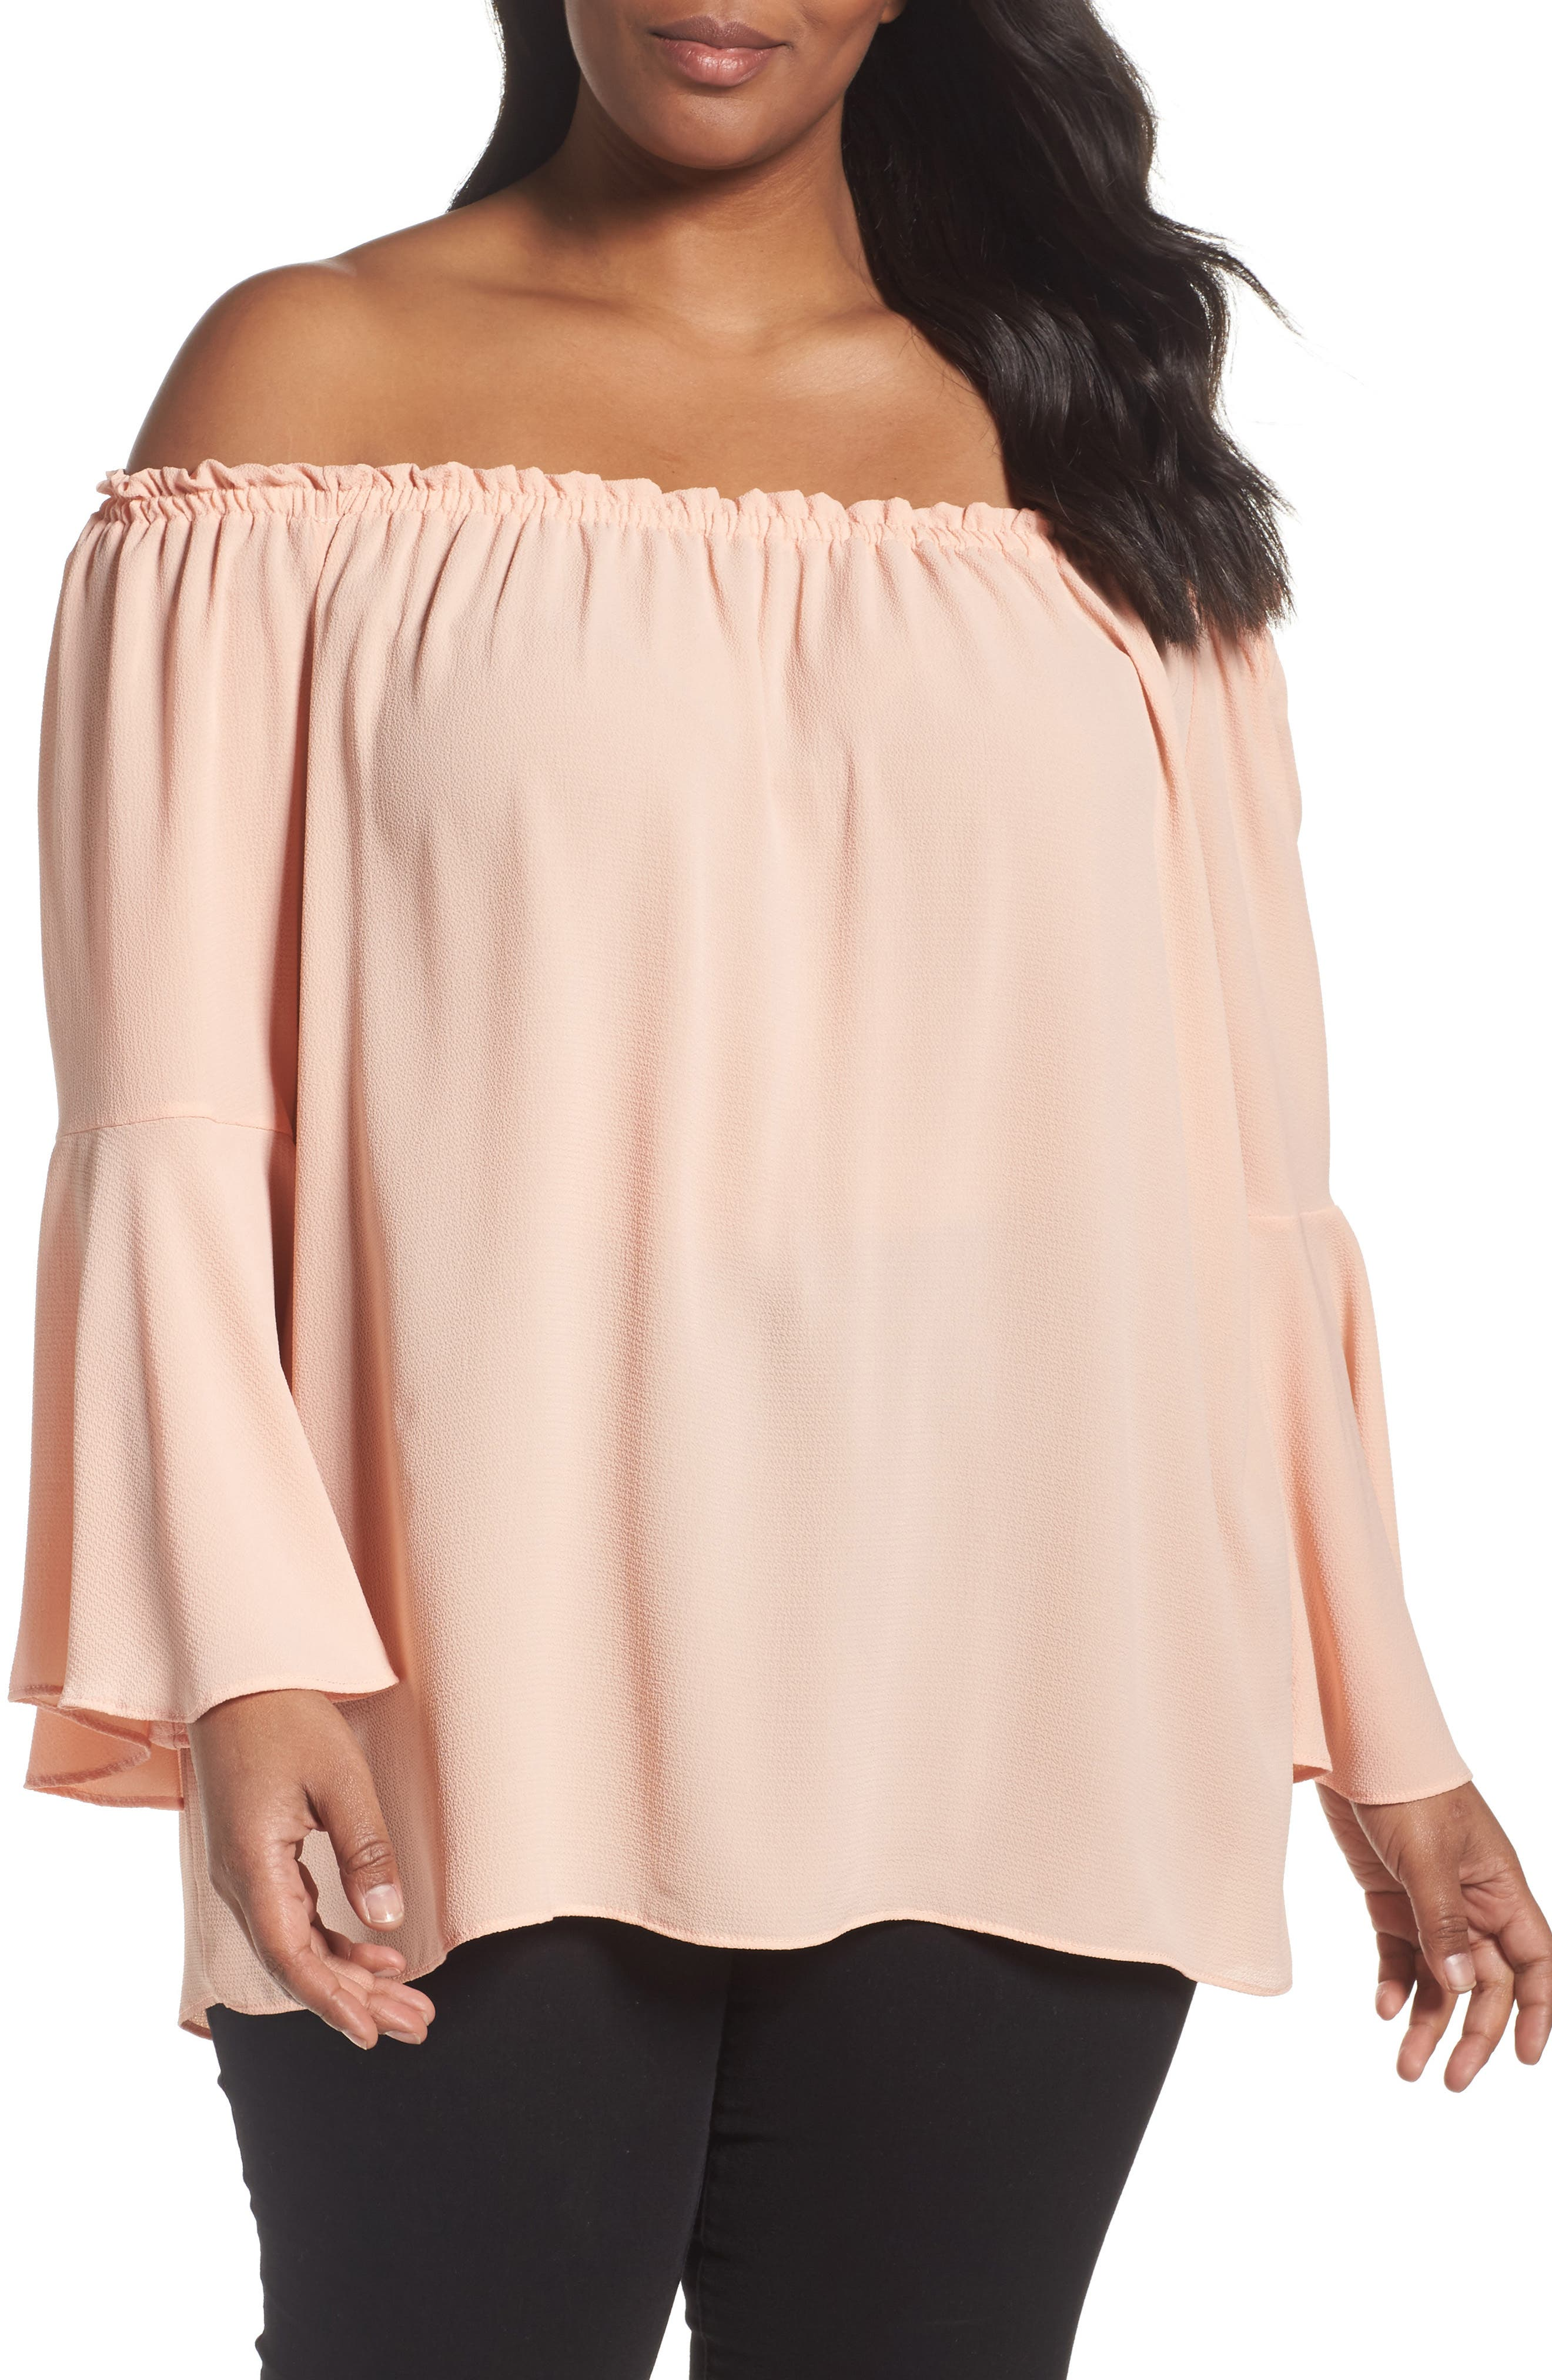 Main Image - Bobeau Bell Sleeve Off the Shoulder Top (Plus Size)